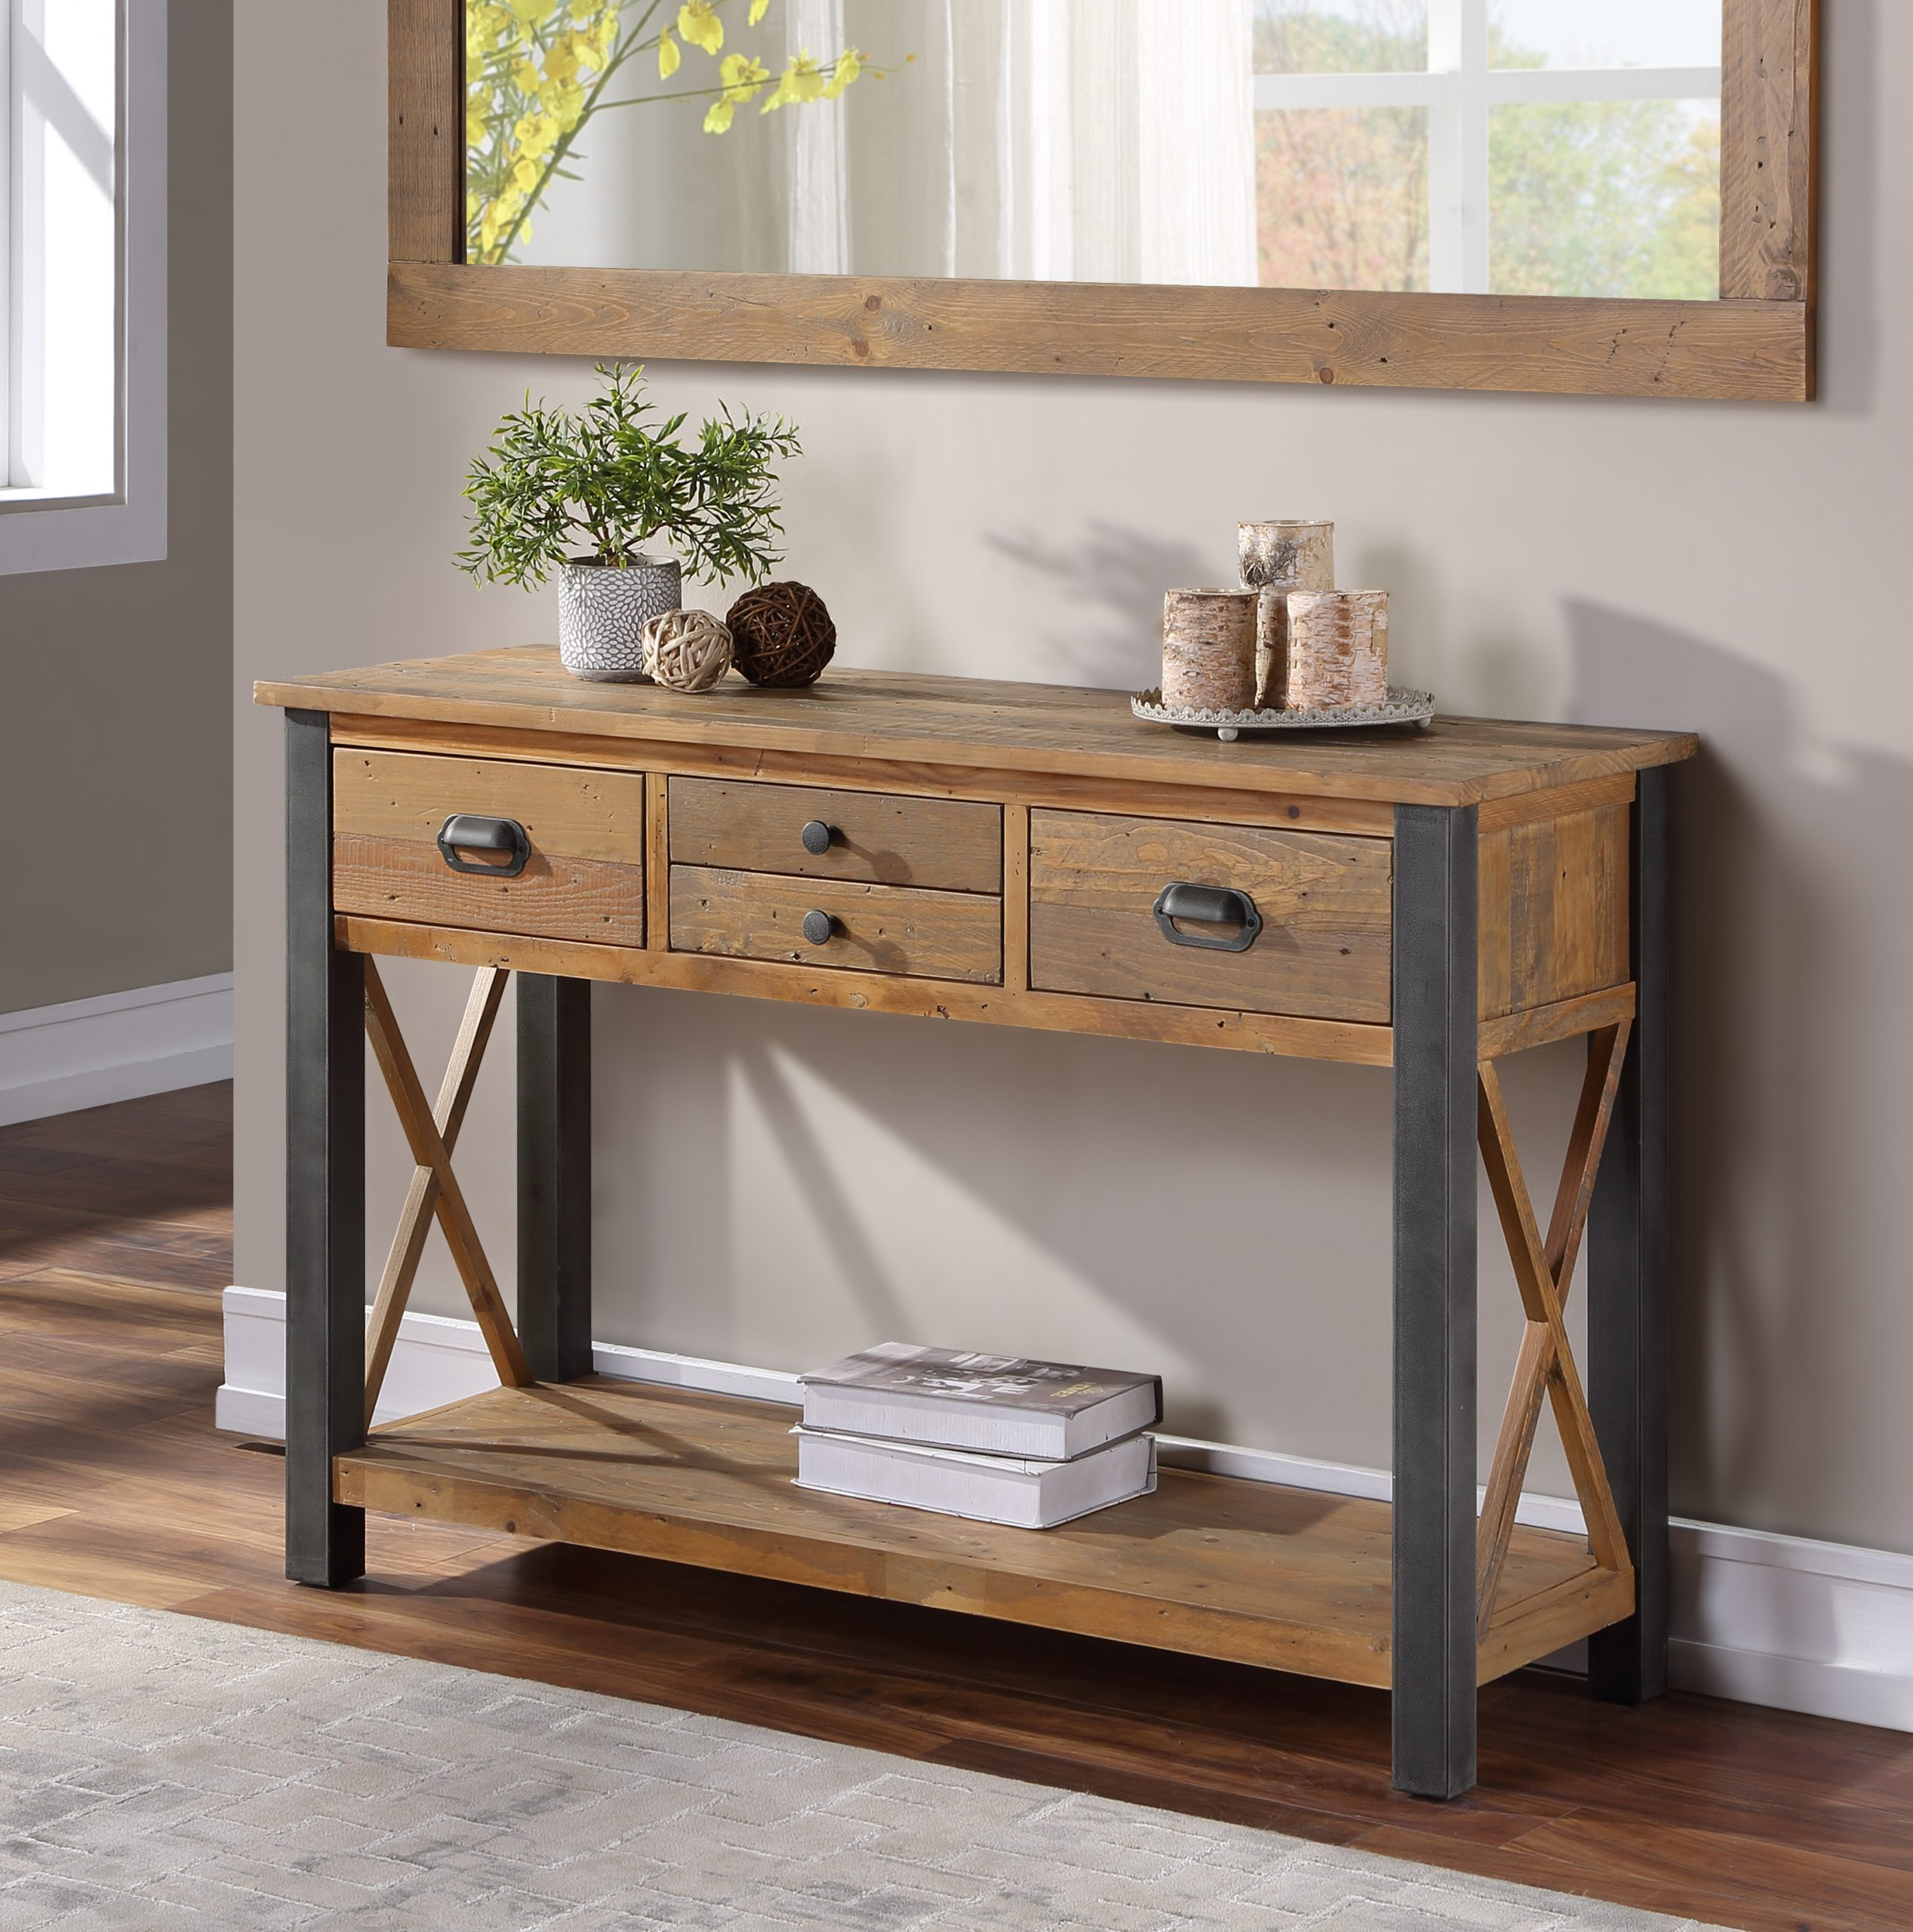 wqide console table with four drawers - open